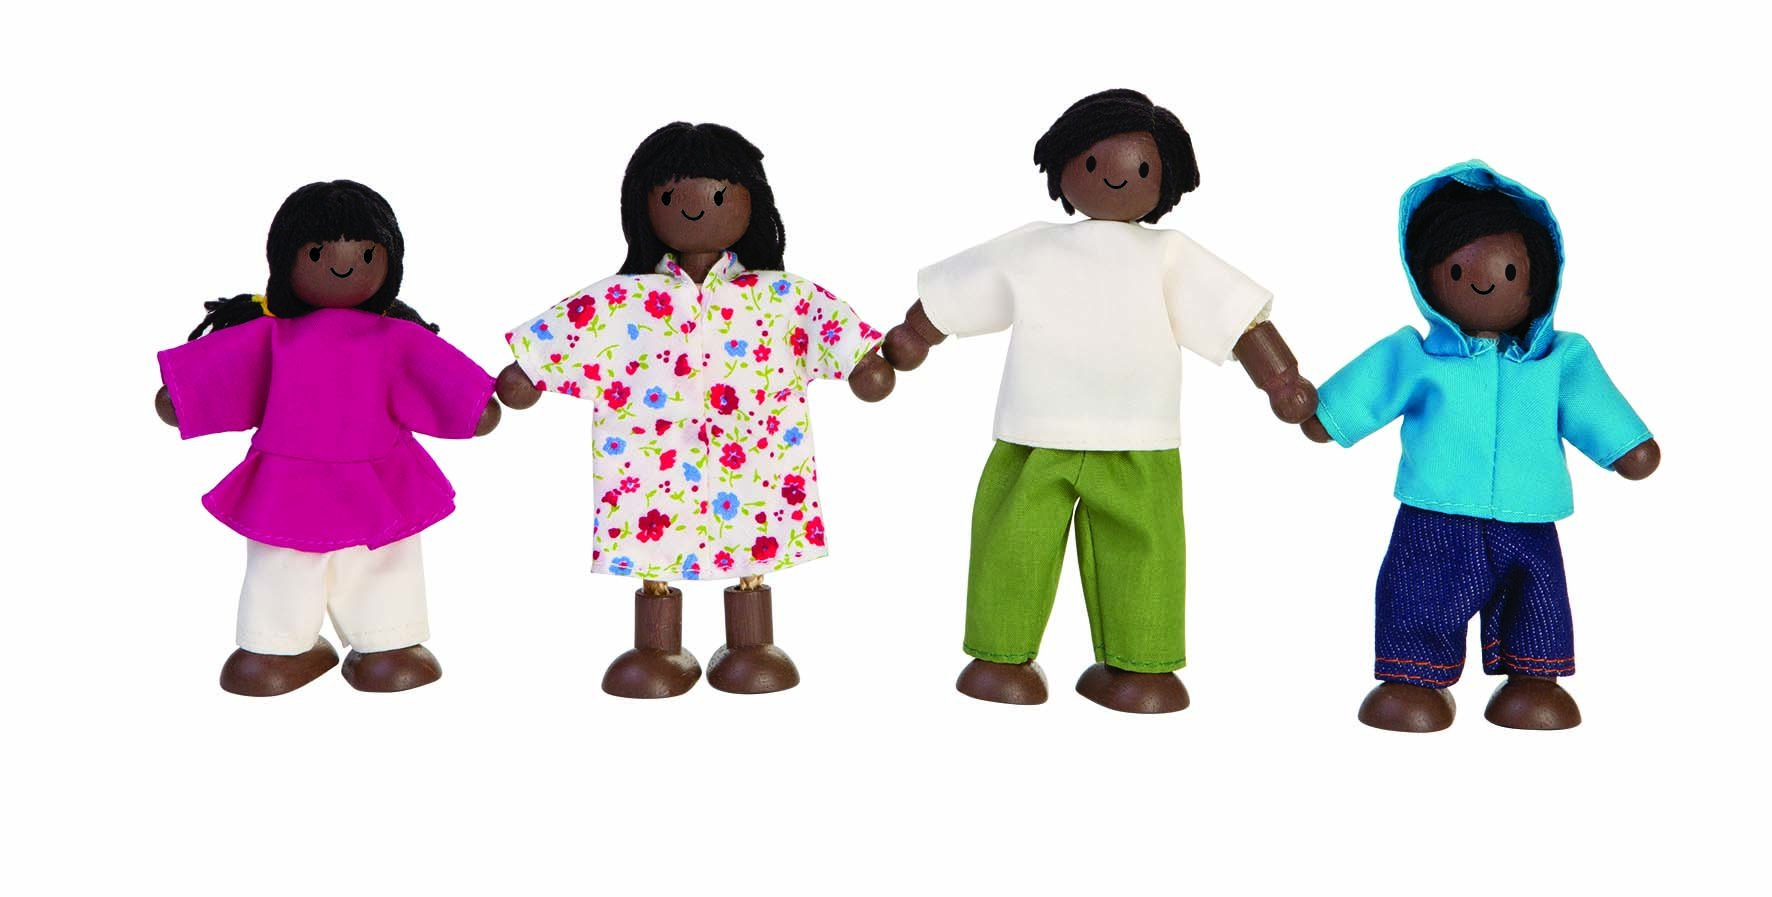 Doll Family - Ethnic